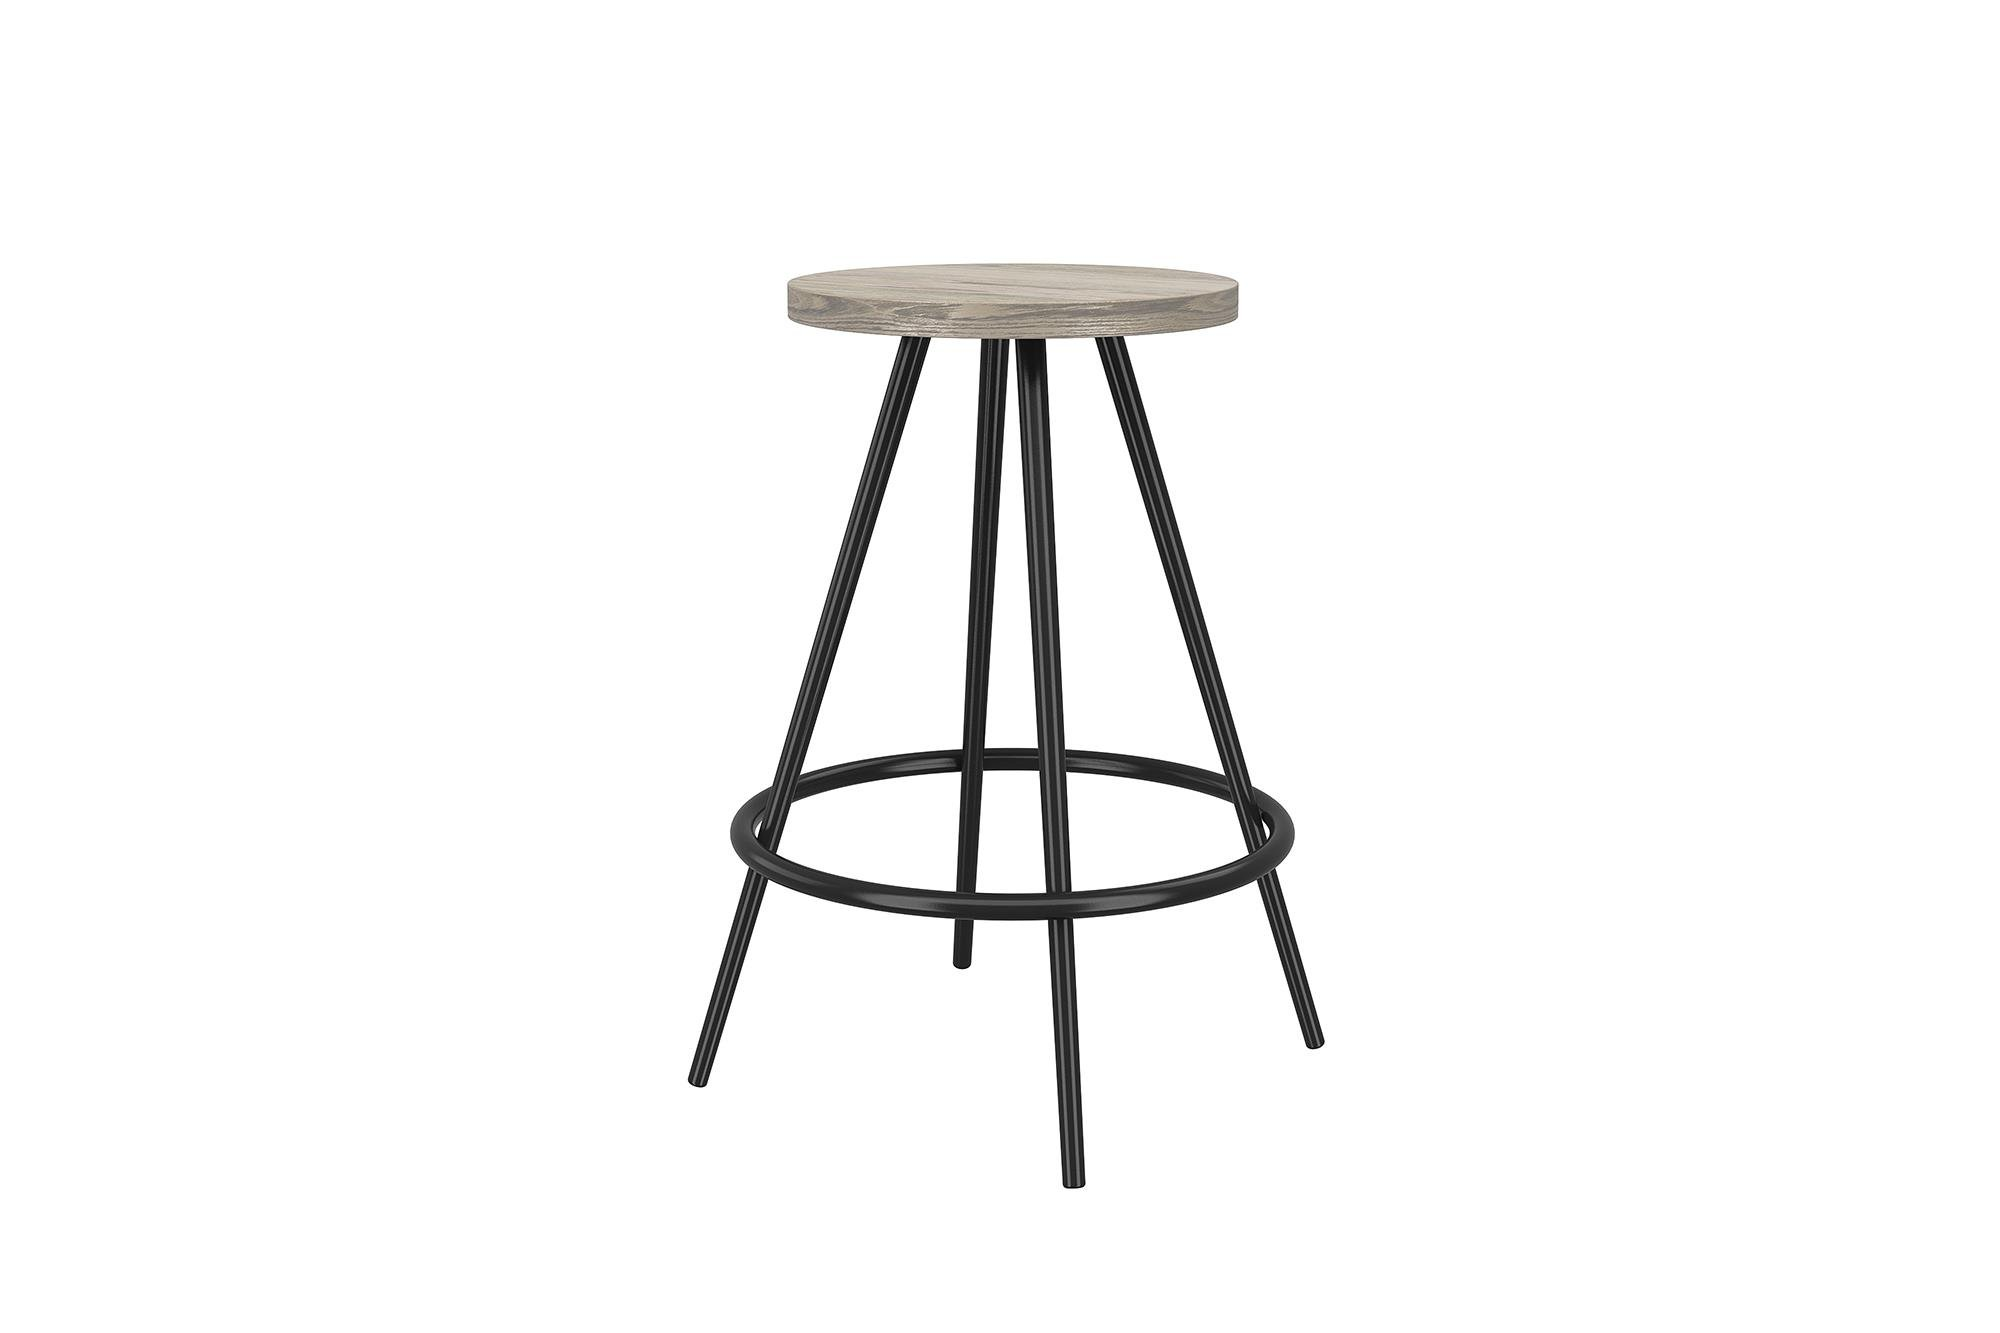 Novogratz Leo Farmhourse 24-Inch Counter Stool, Rustic and Modern Style, Black Metal Frame with Grey Wood Seat